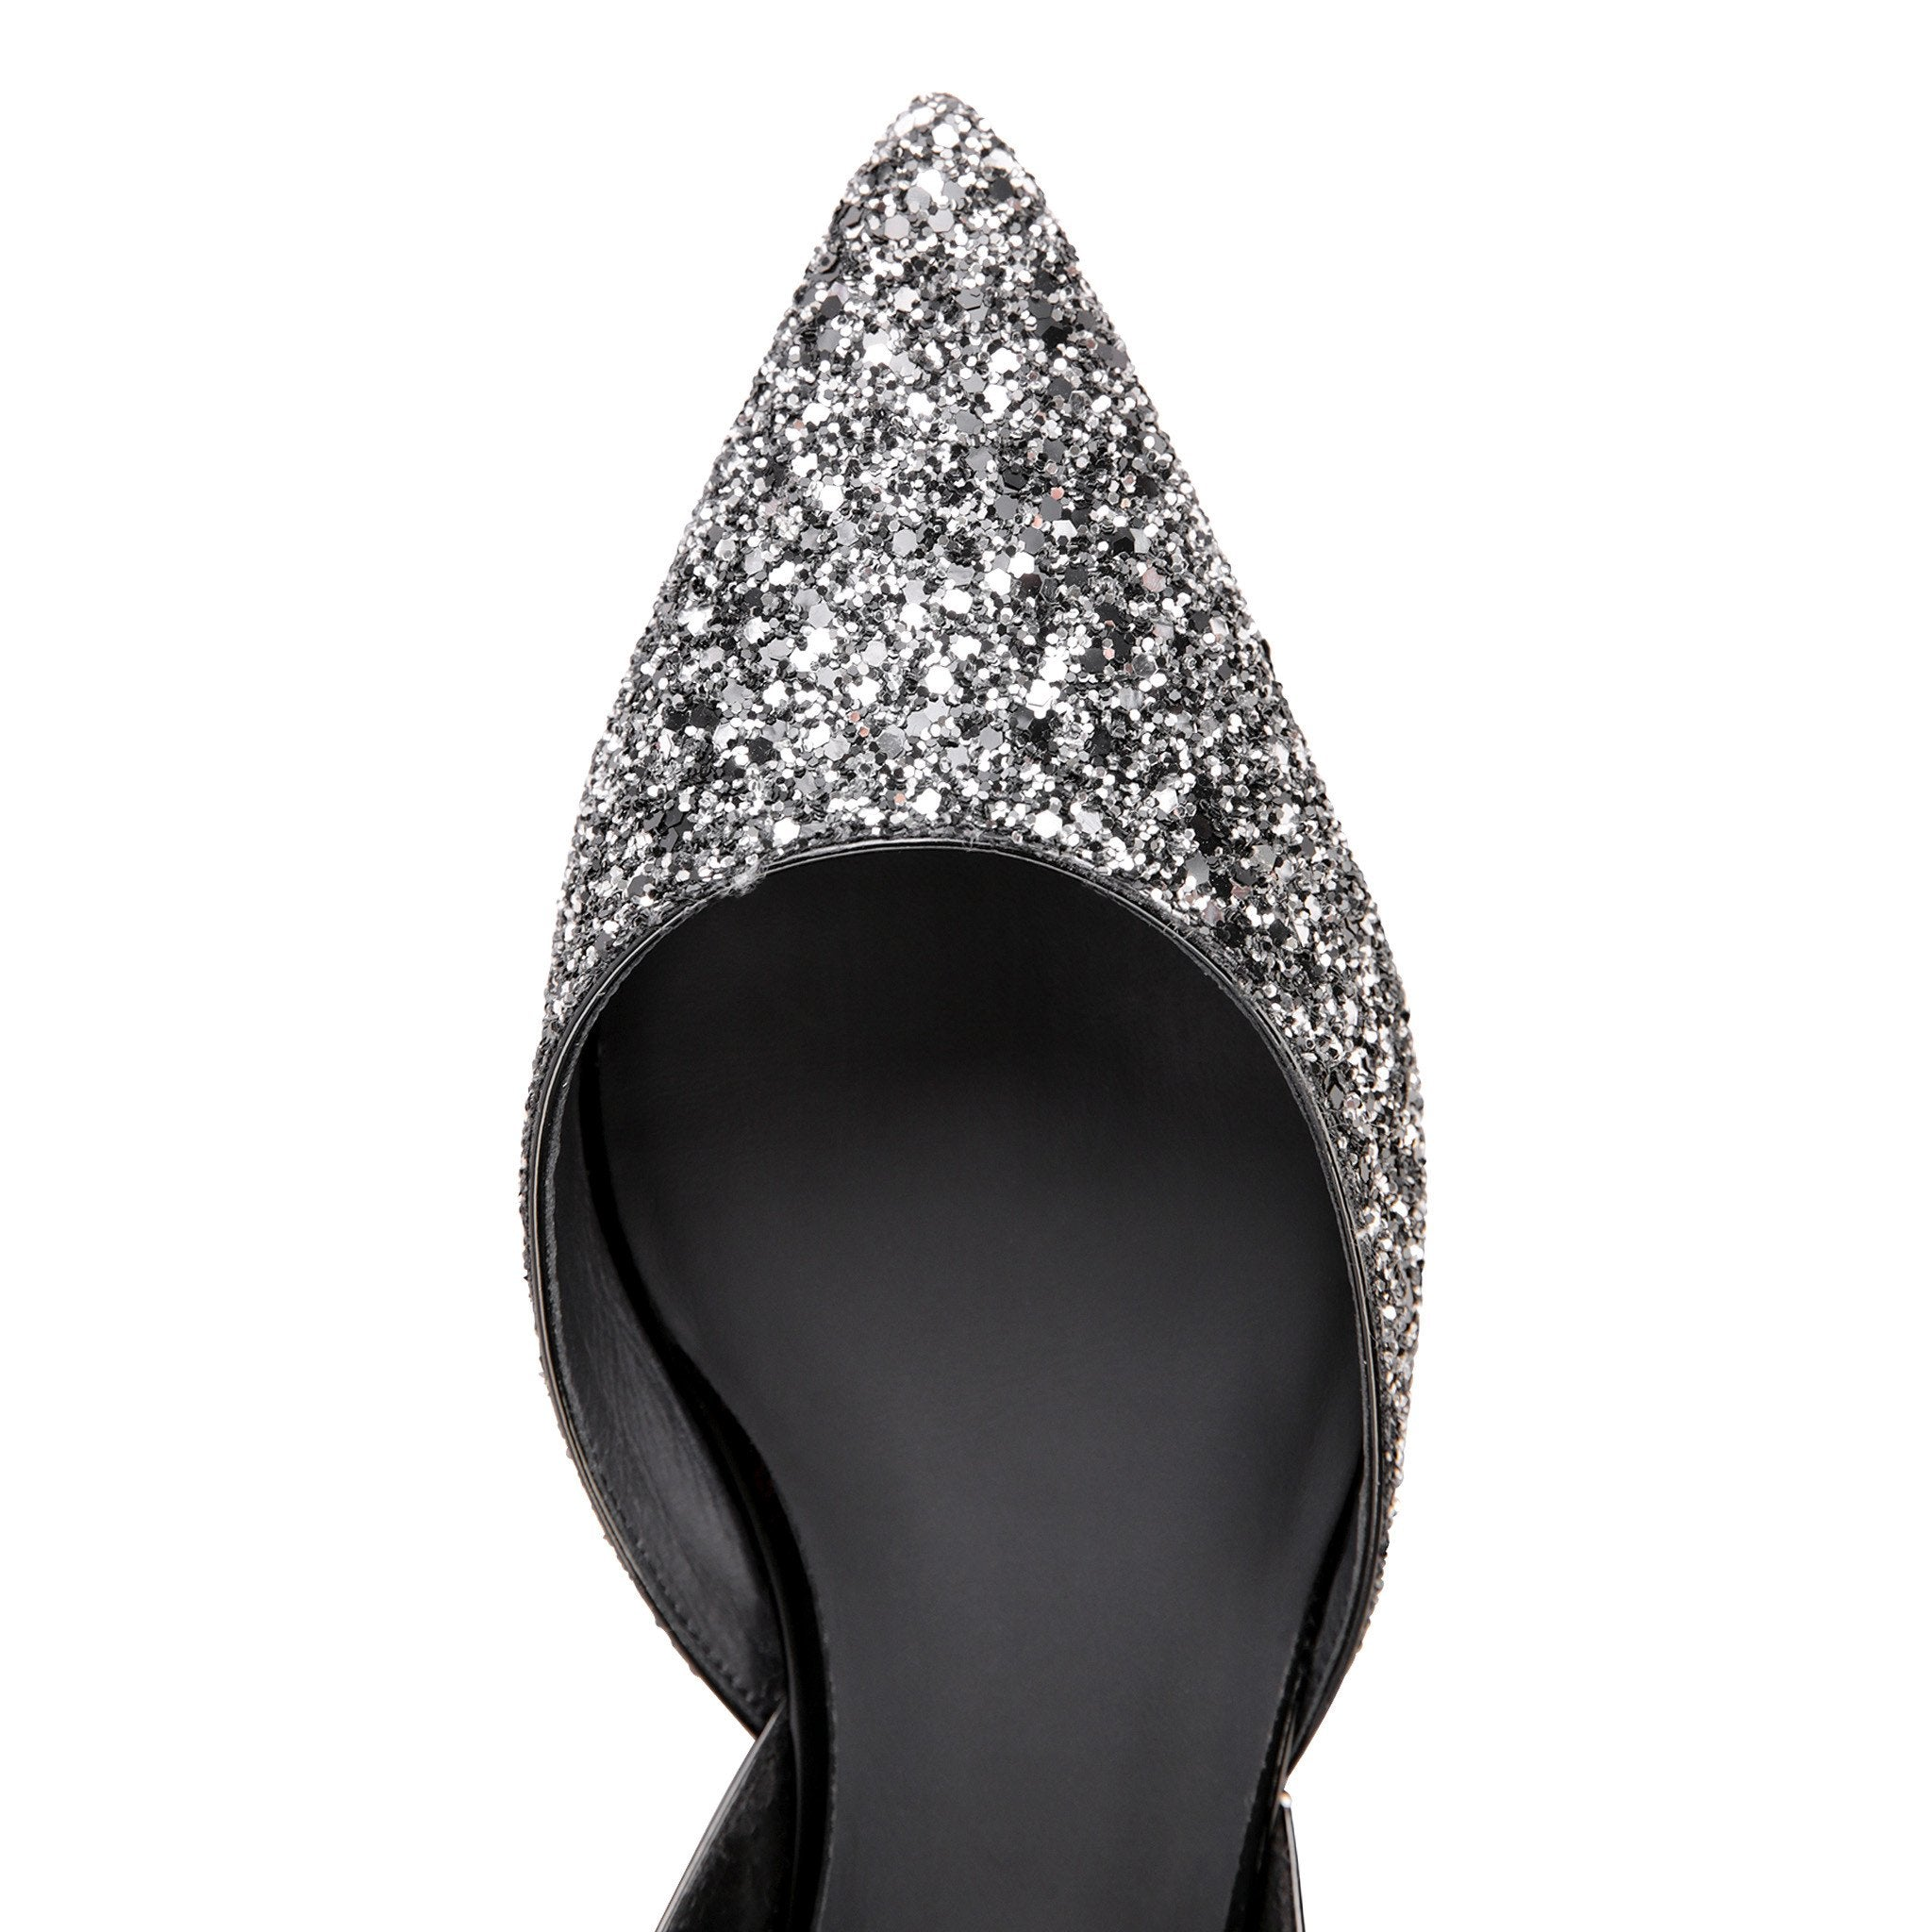 PONZA - Glitter Notte + Patent Nero, VIAJIYU - Women's Hand Made Sustainable Luxury Shoes. Made in Italy. Made to Order.